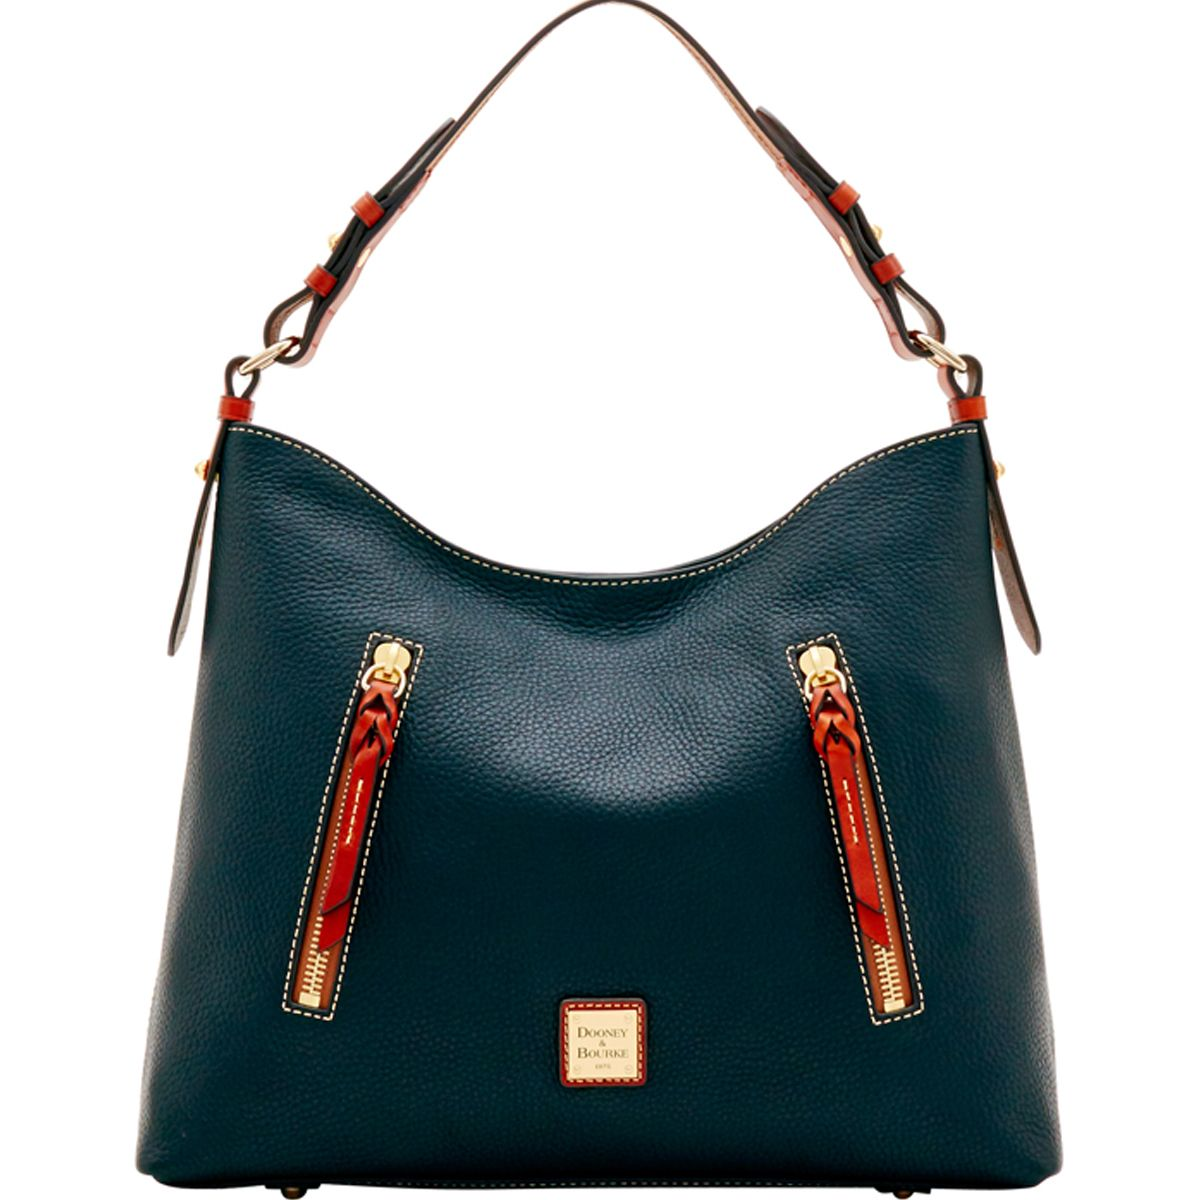 be3ee6b4cb Dooney & Bourke Hobo Bags - Macy's